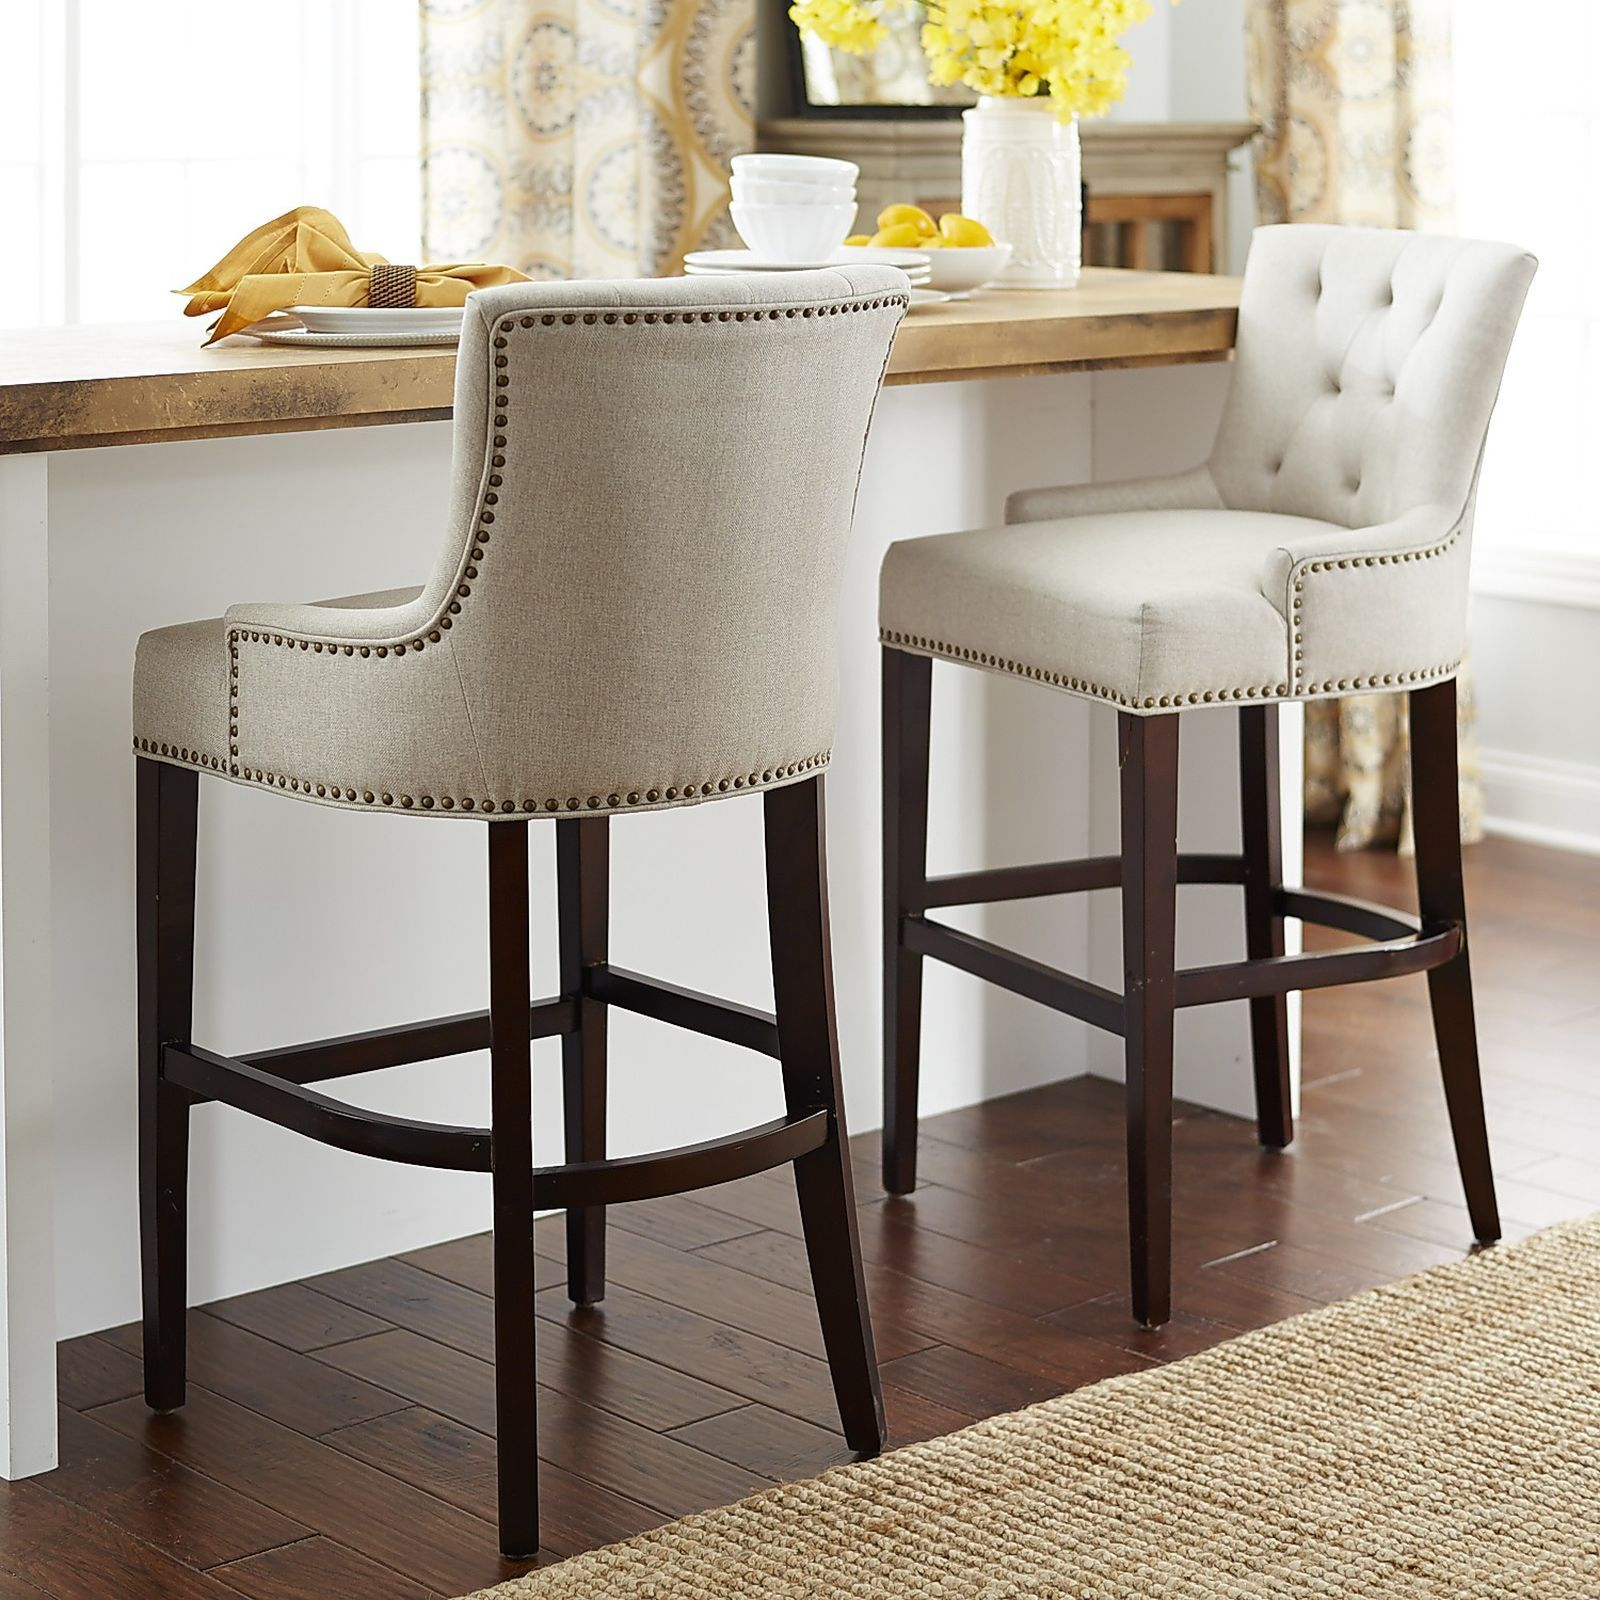 Ava Flax Counter Amp Bar Stool Ava Stools And Elegant